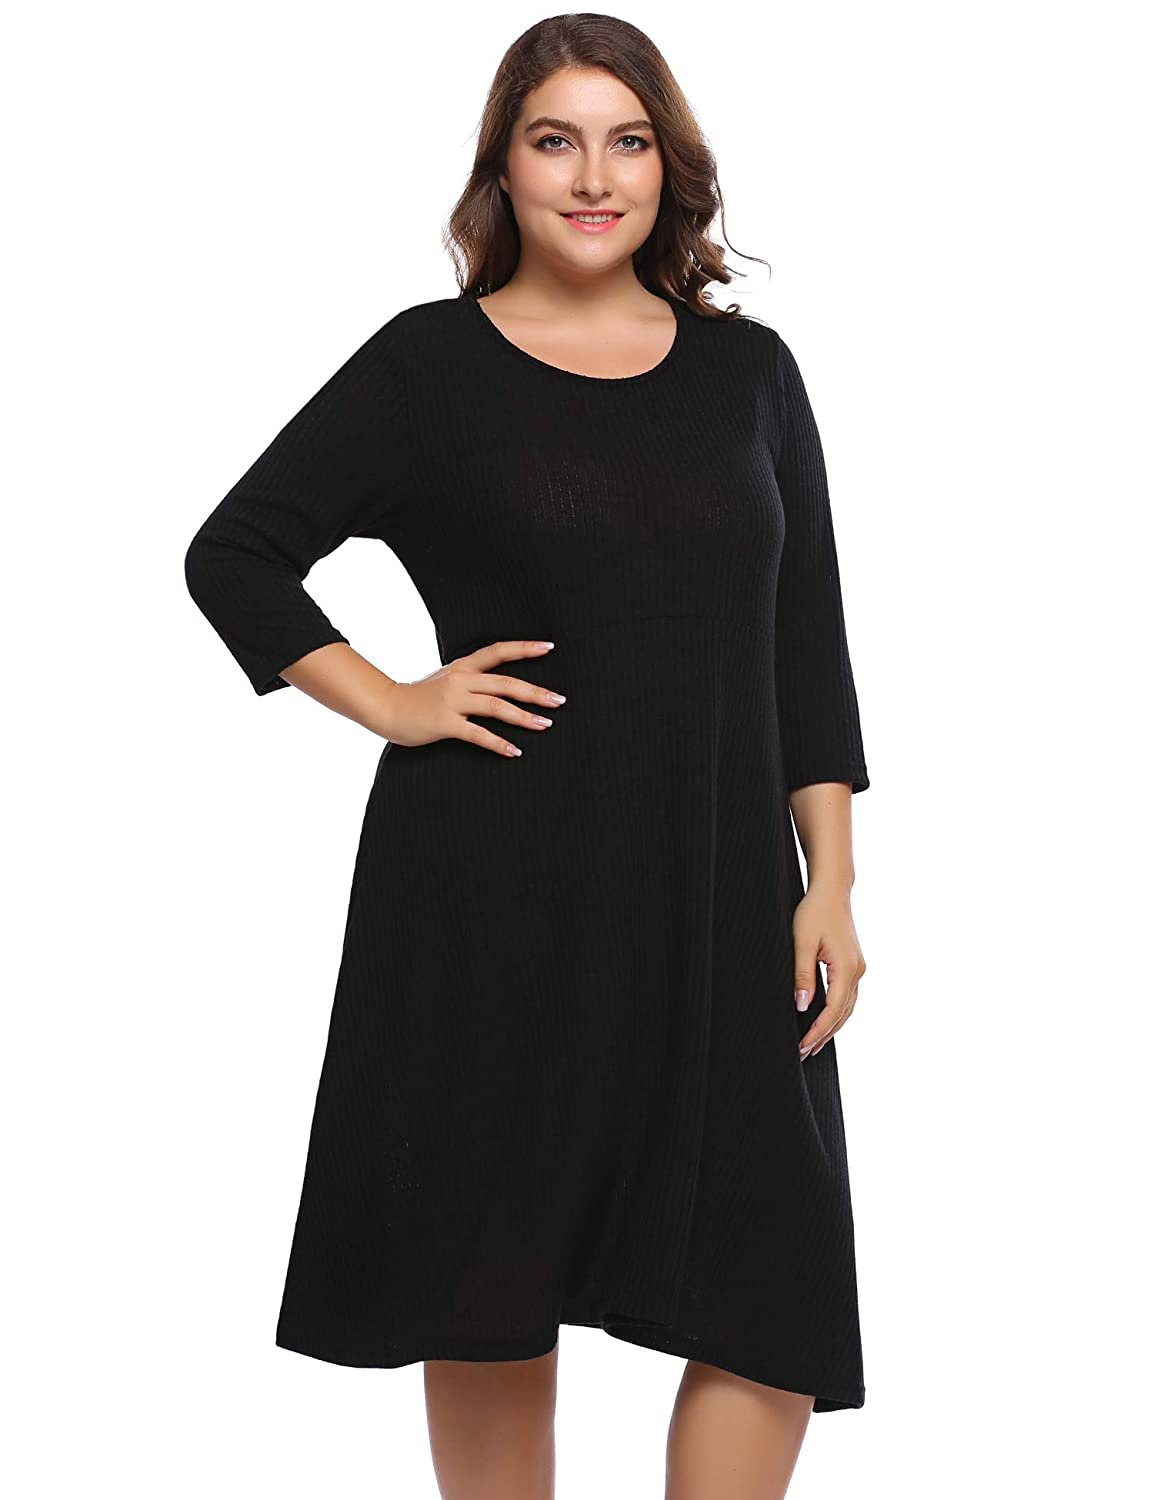 IN\'VOLAND Plus Size Women Long Sleeve A-Line Dresses Casual Loose Soft  Stretchy Swing T-Shirt Dress